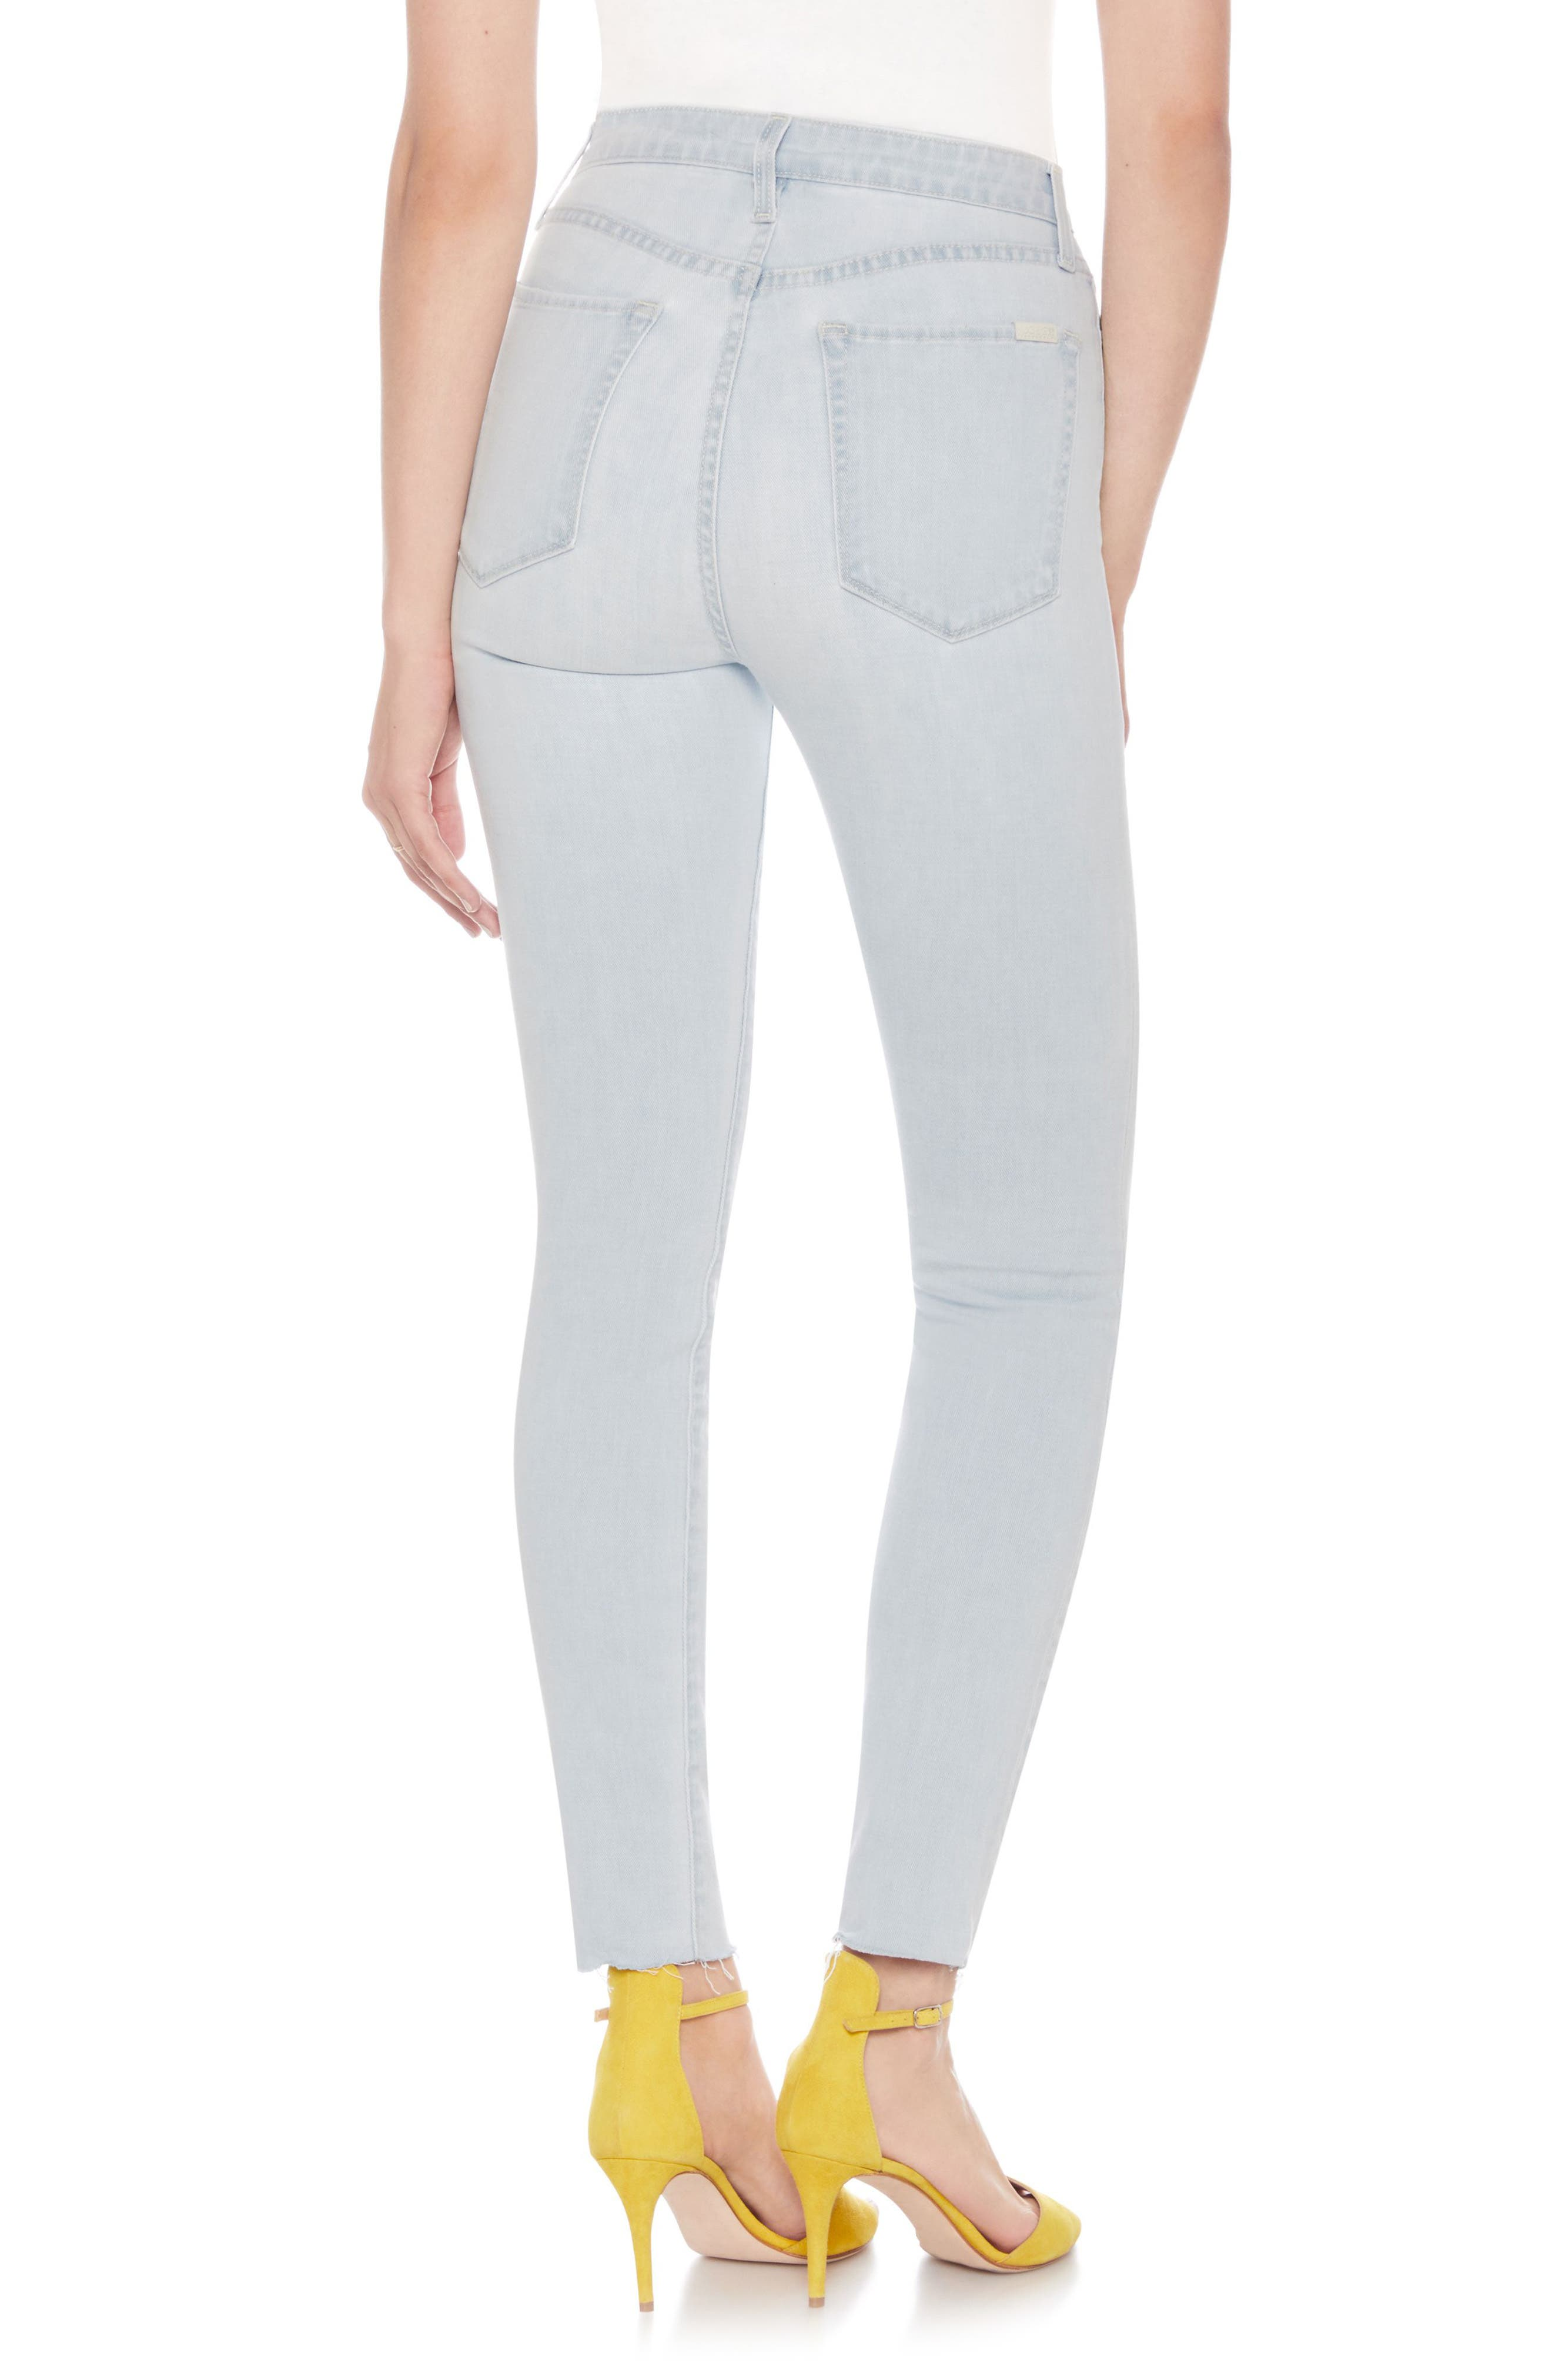 JOE'S,                             The Bella Super High Waist Ankle Skinny Jeans,                             Alternate thumbnail 2, color,                             430